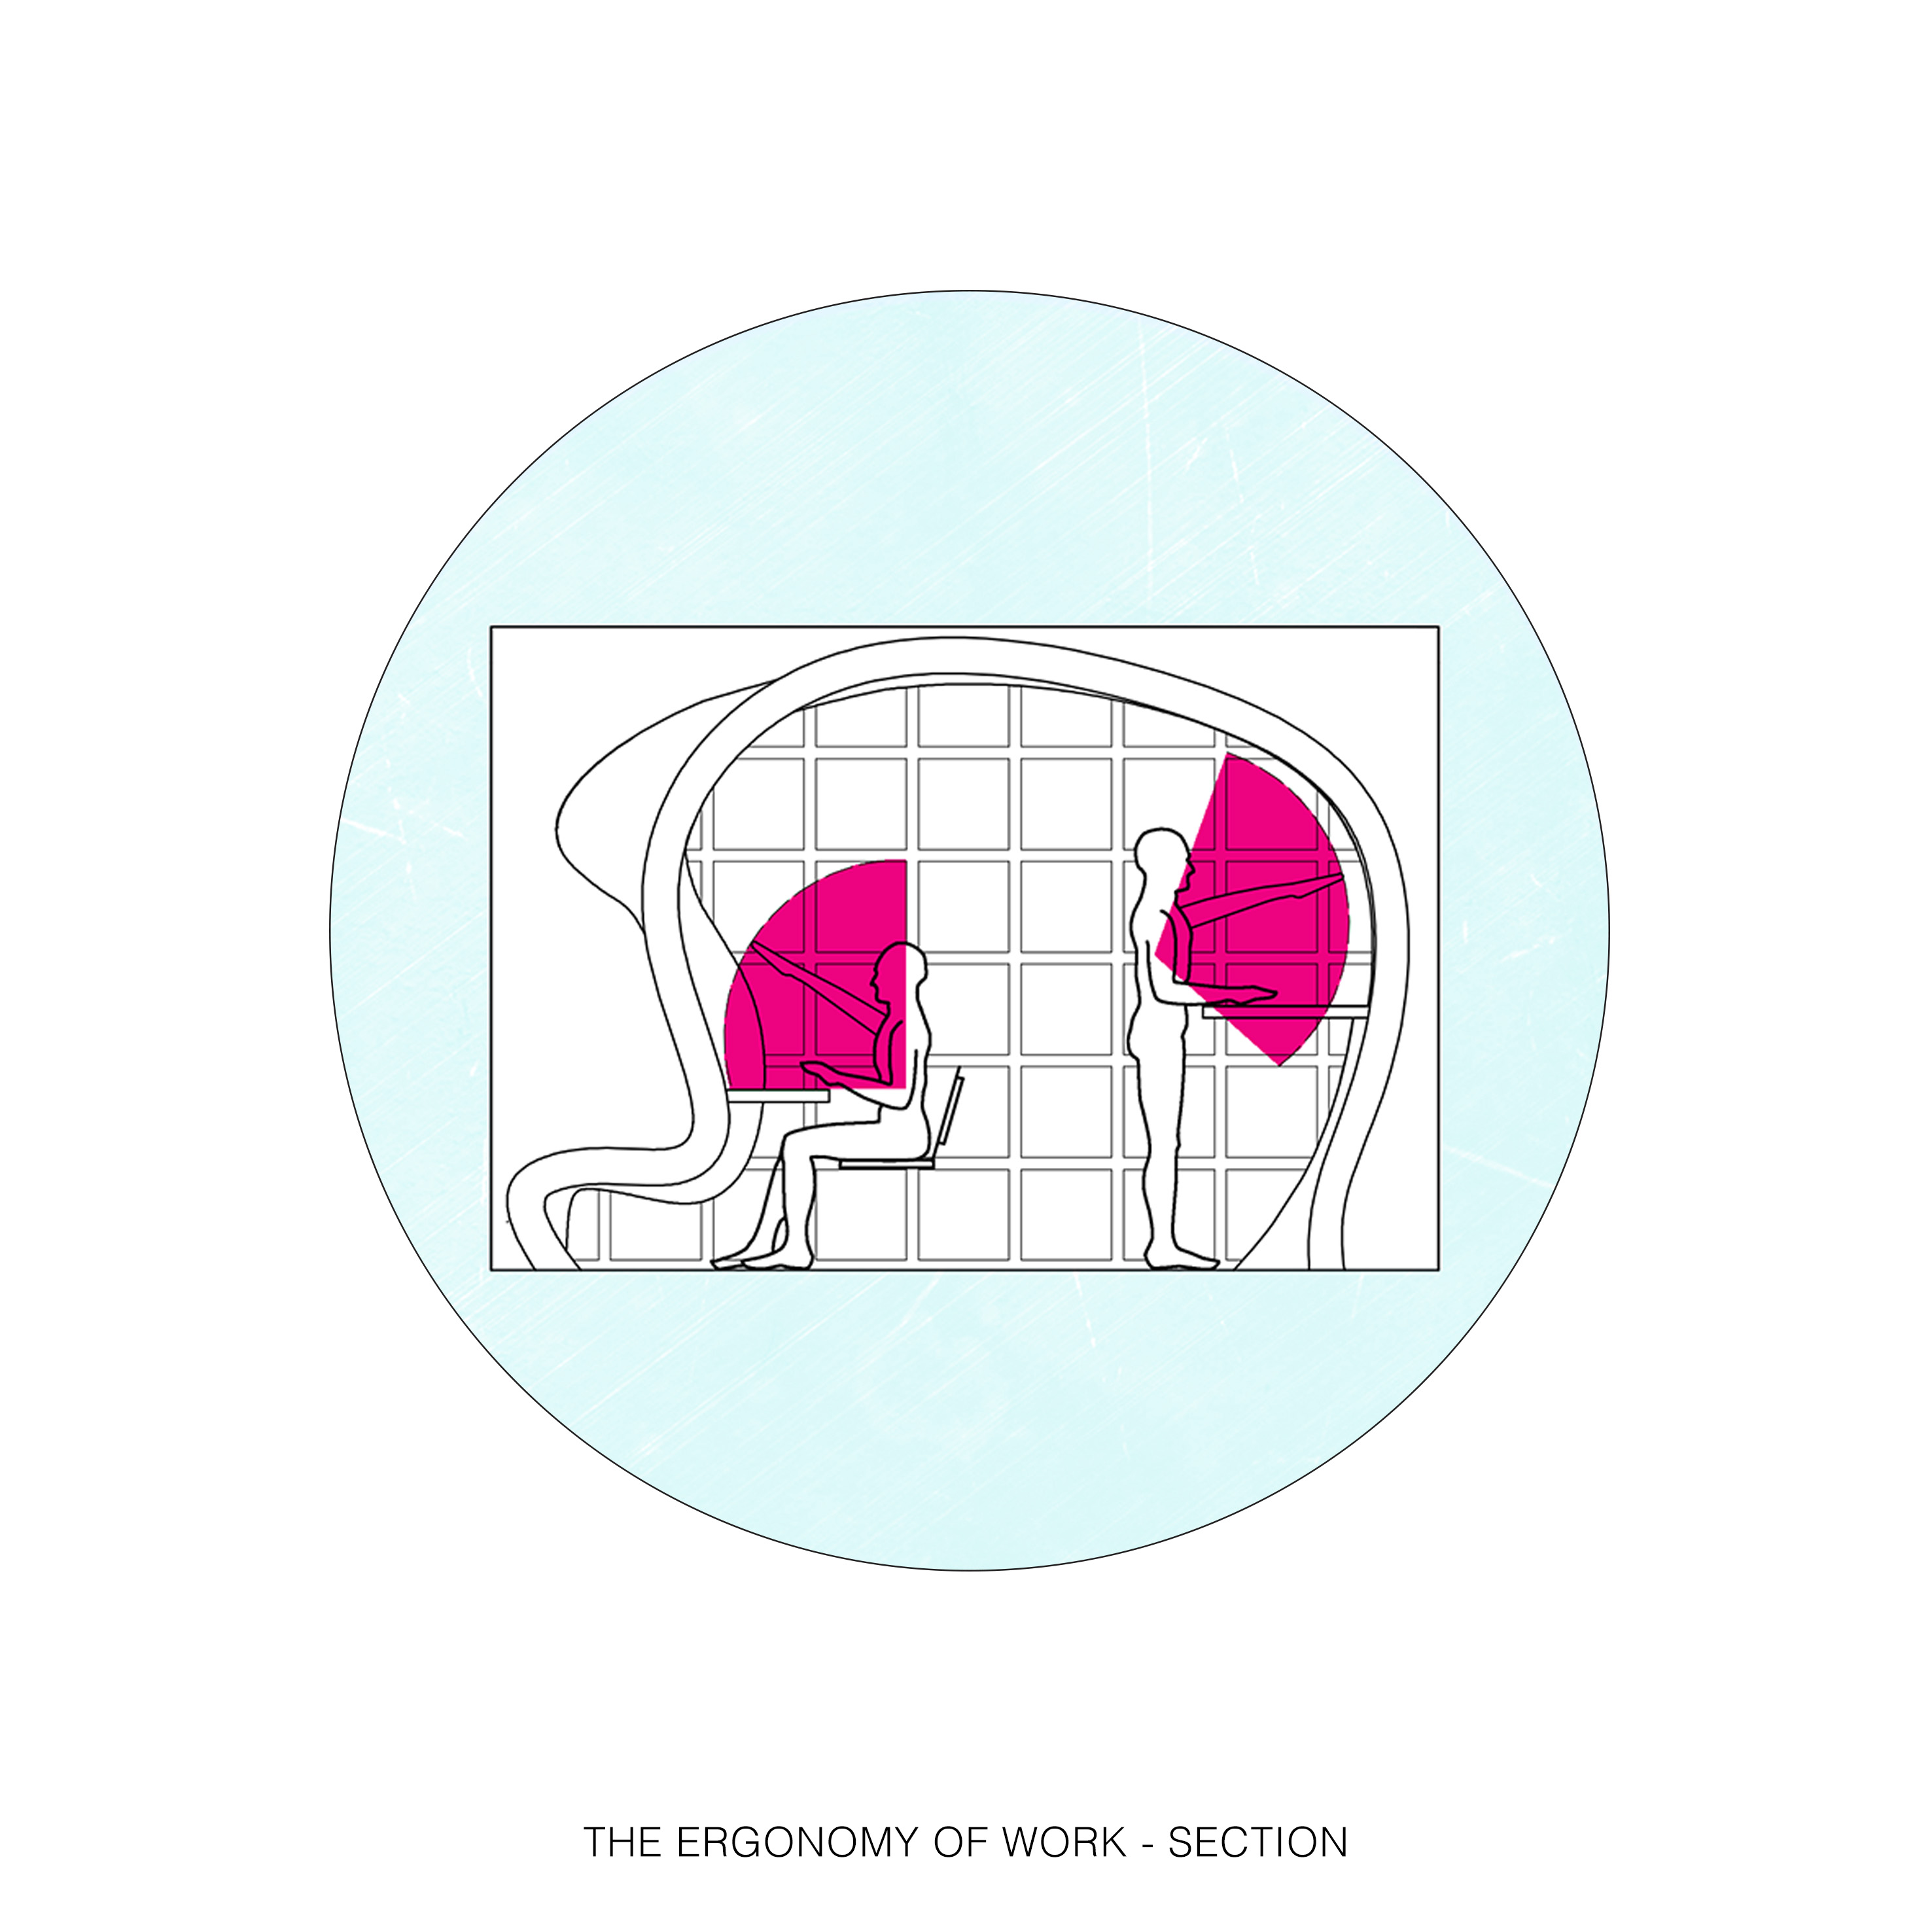 18_THE ERGONOMY OF WORK – SECTION